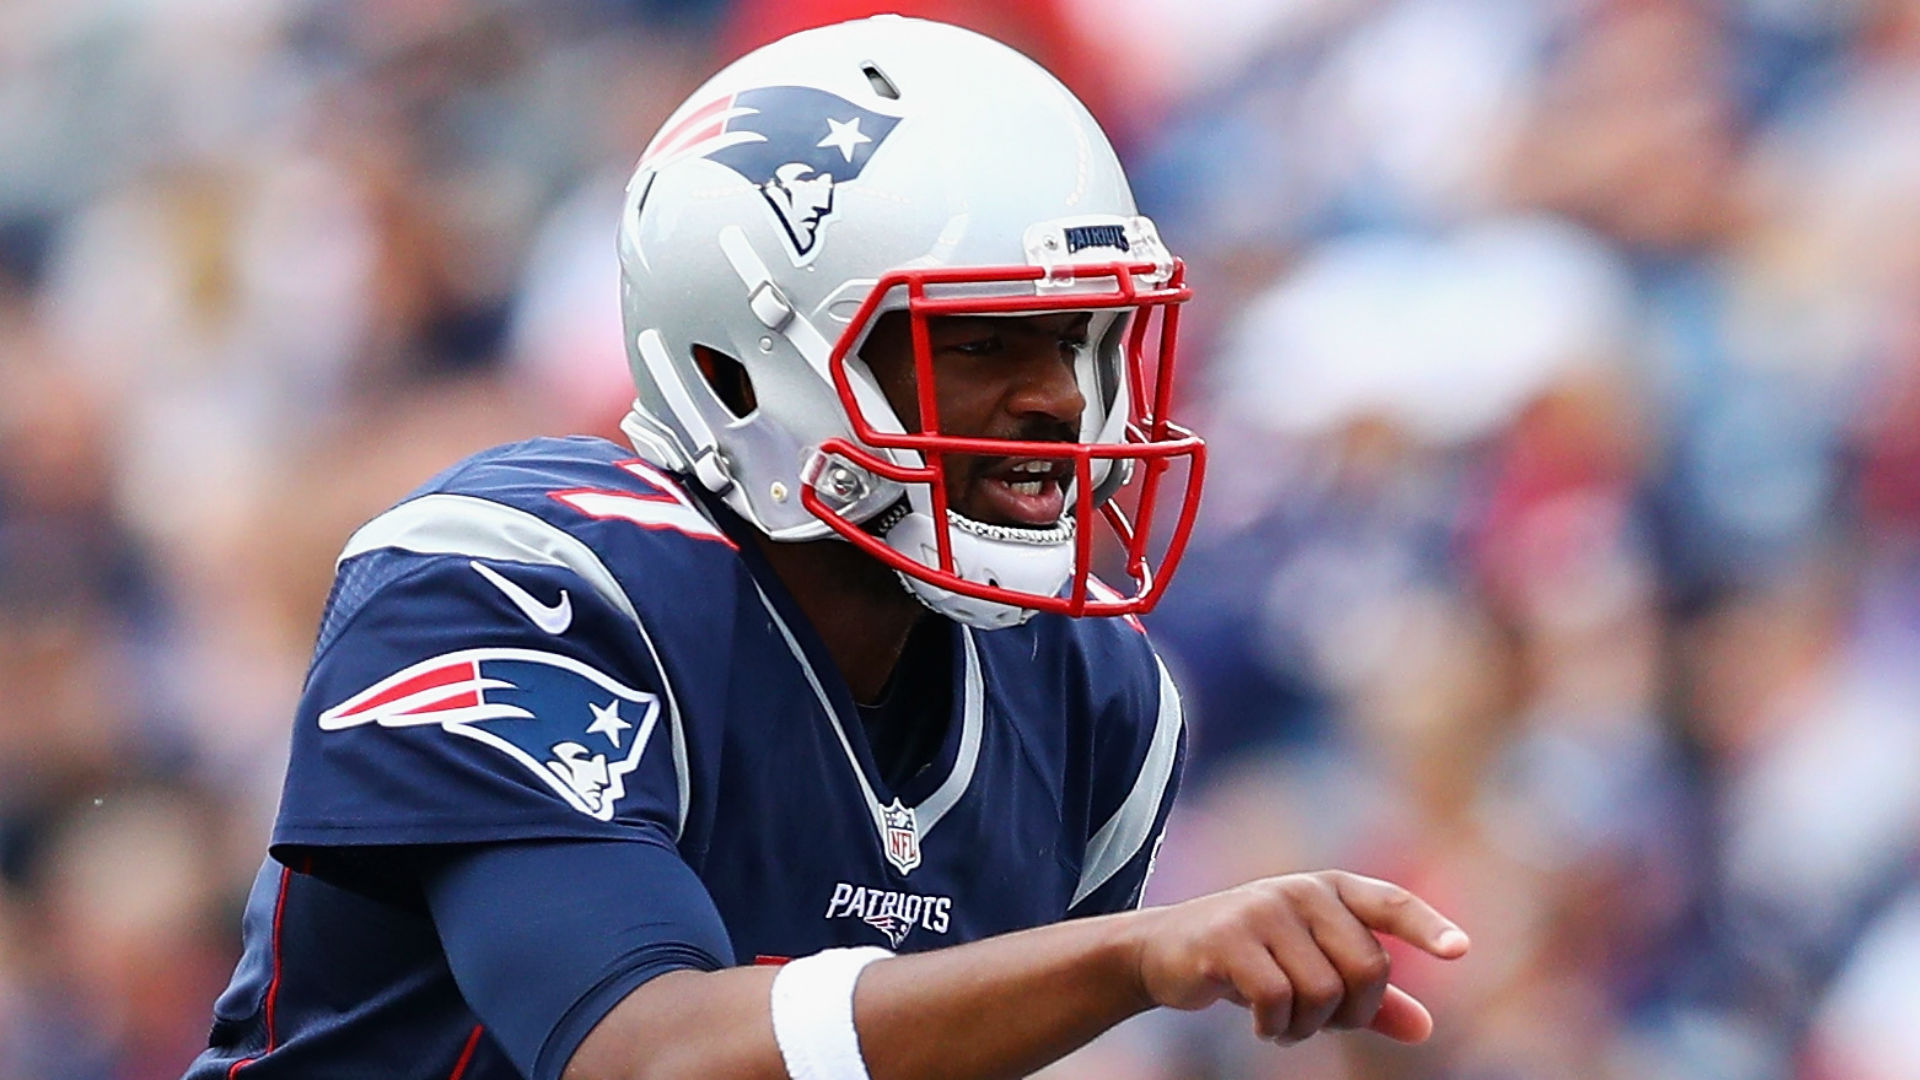 Patriots trade Brissett, deal for more depth